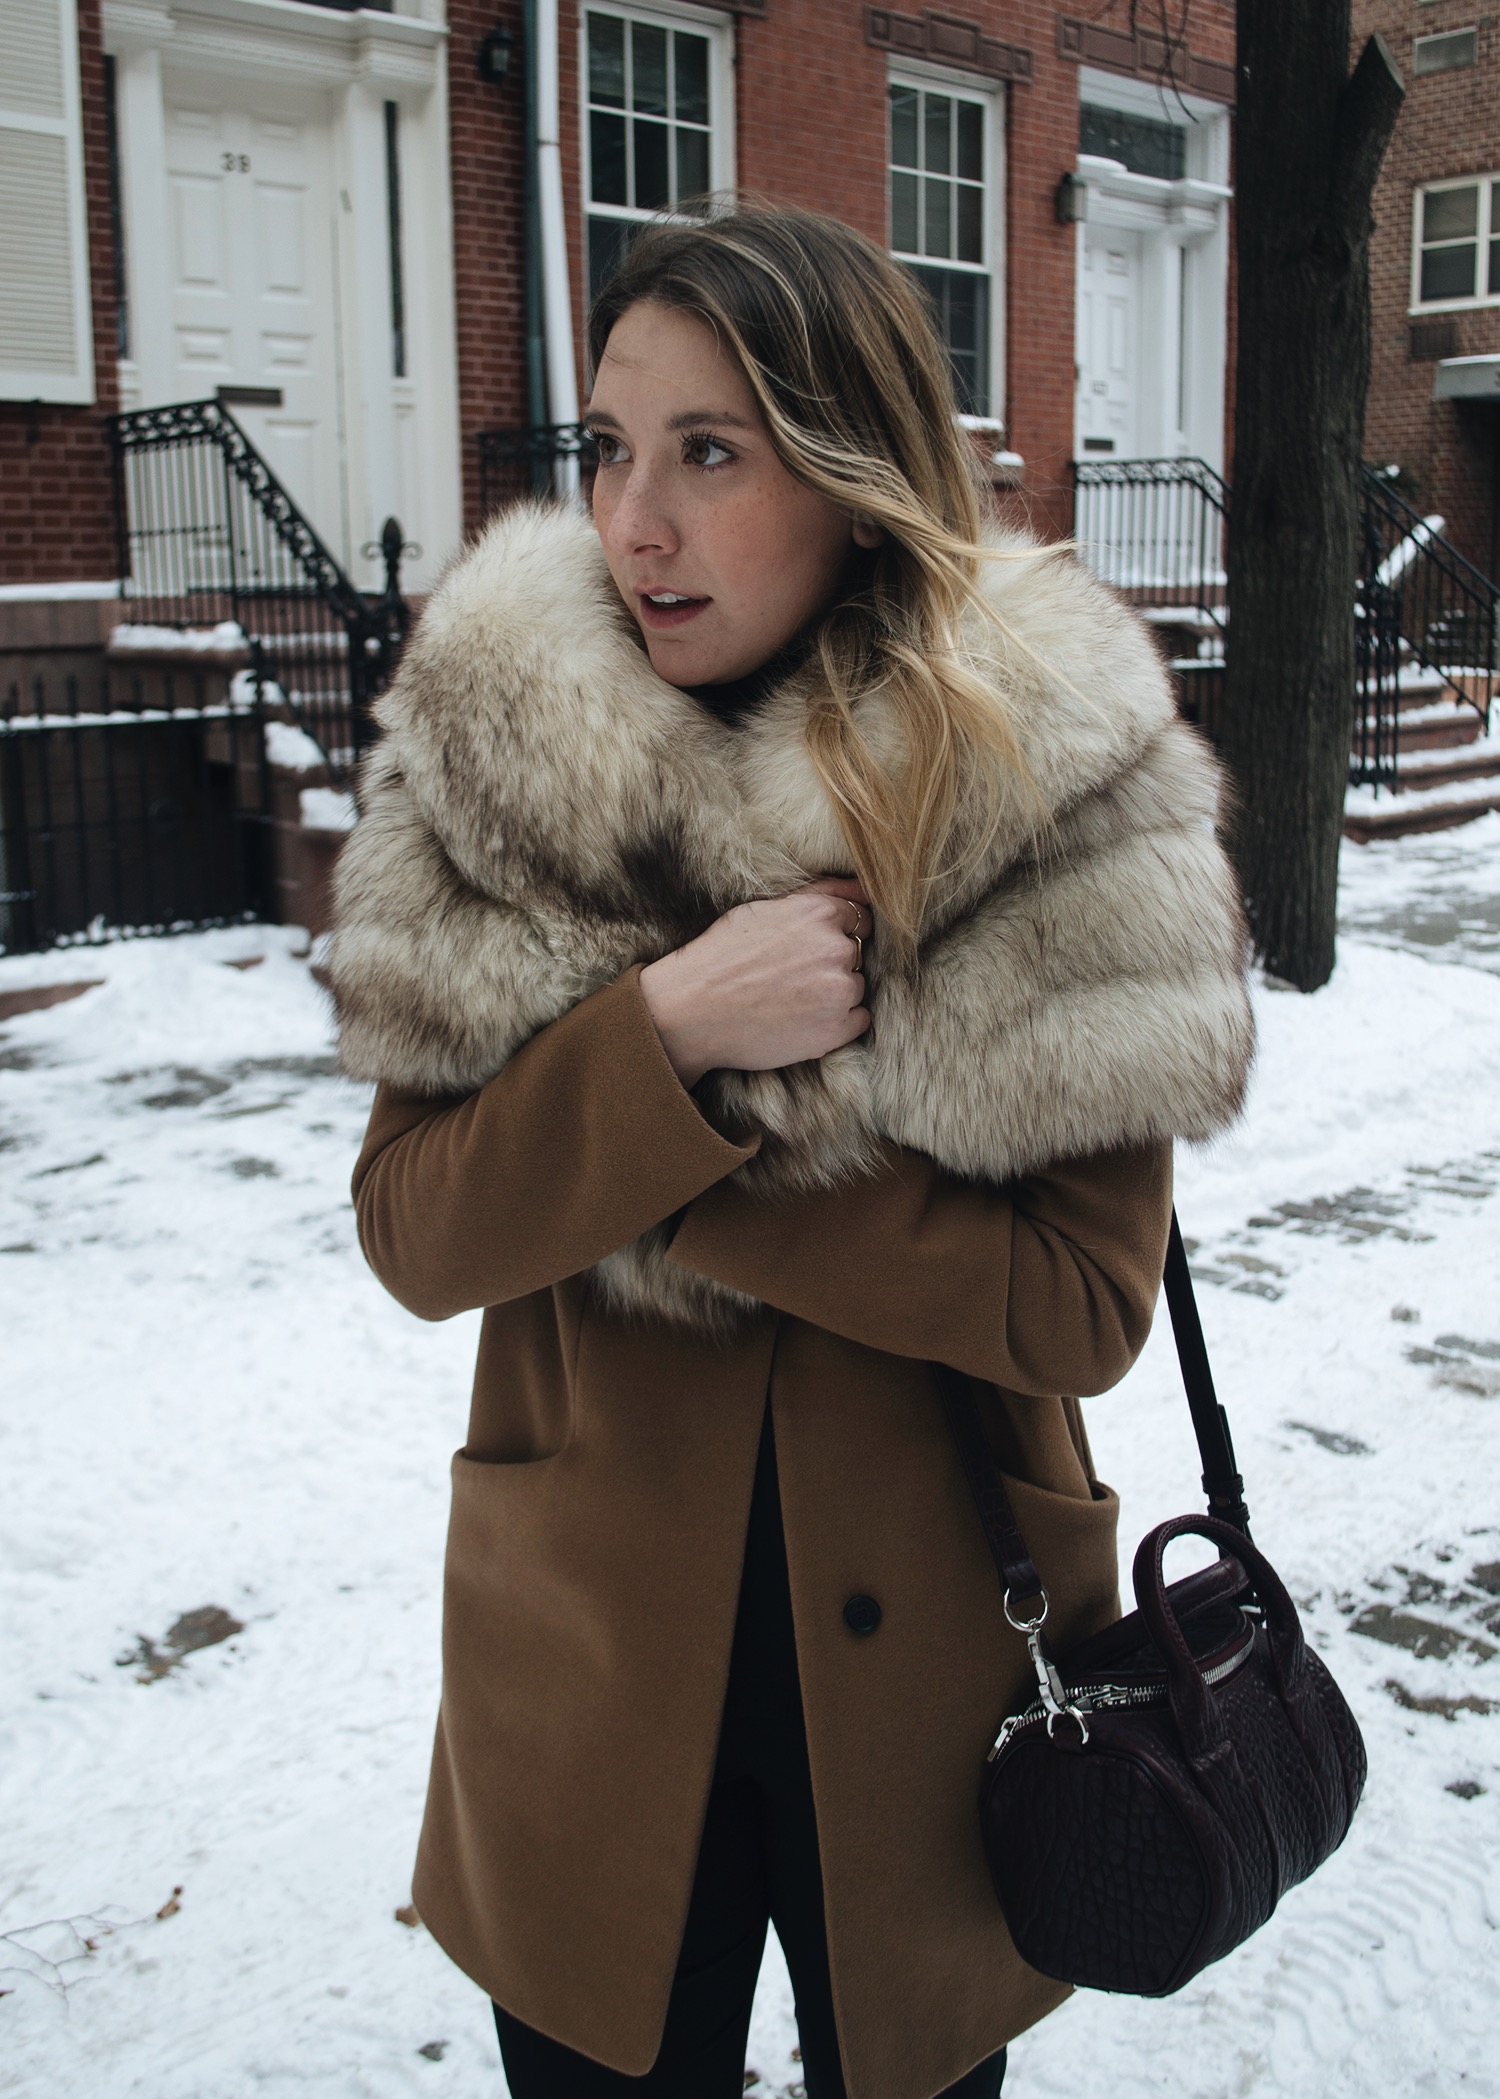 VINTAGE FUR WRAP,  ARITZIA COCOON COAT ,  WHO WHAT WEAR TROUSERS ,  ALEXANDER WANG BAG  AND  BOOT  S